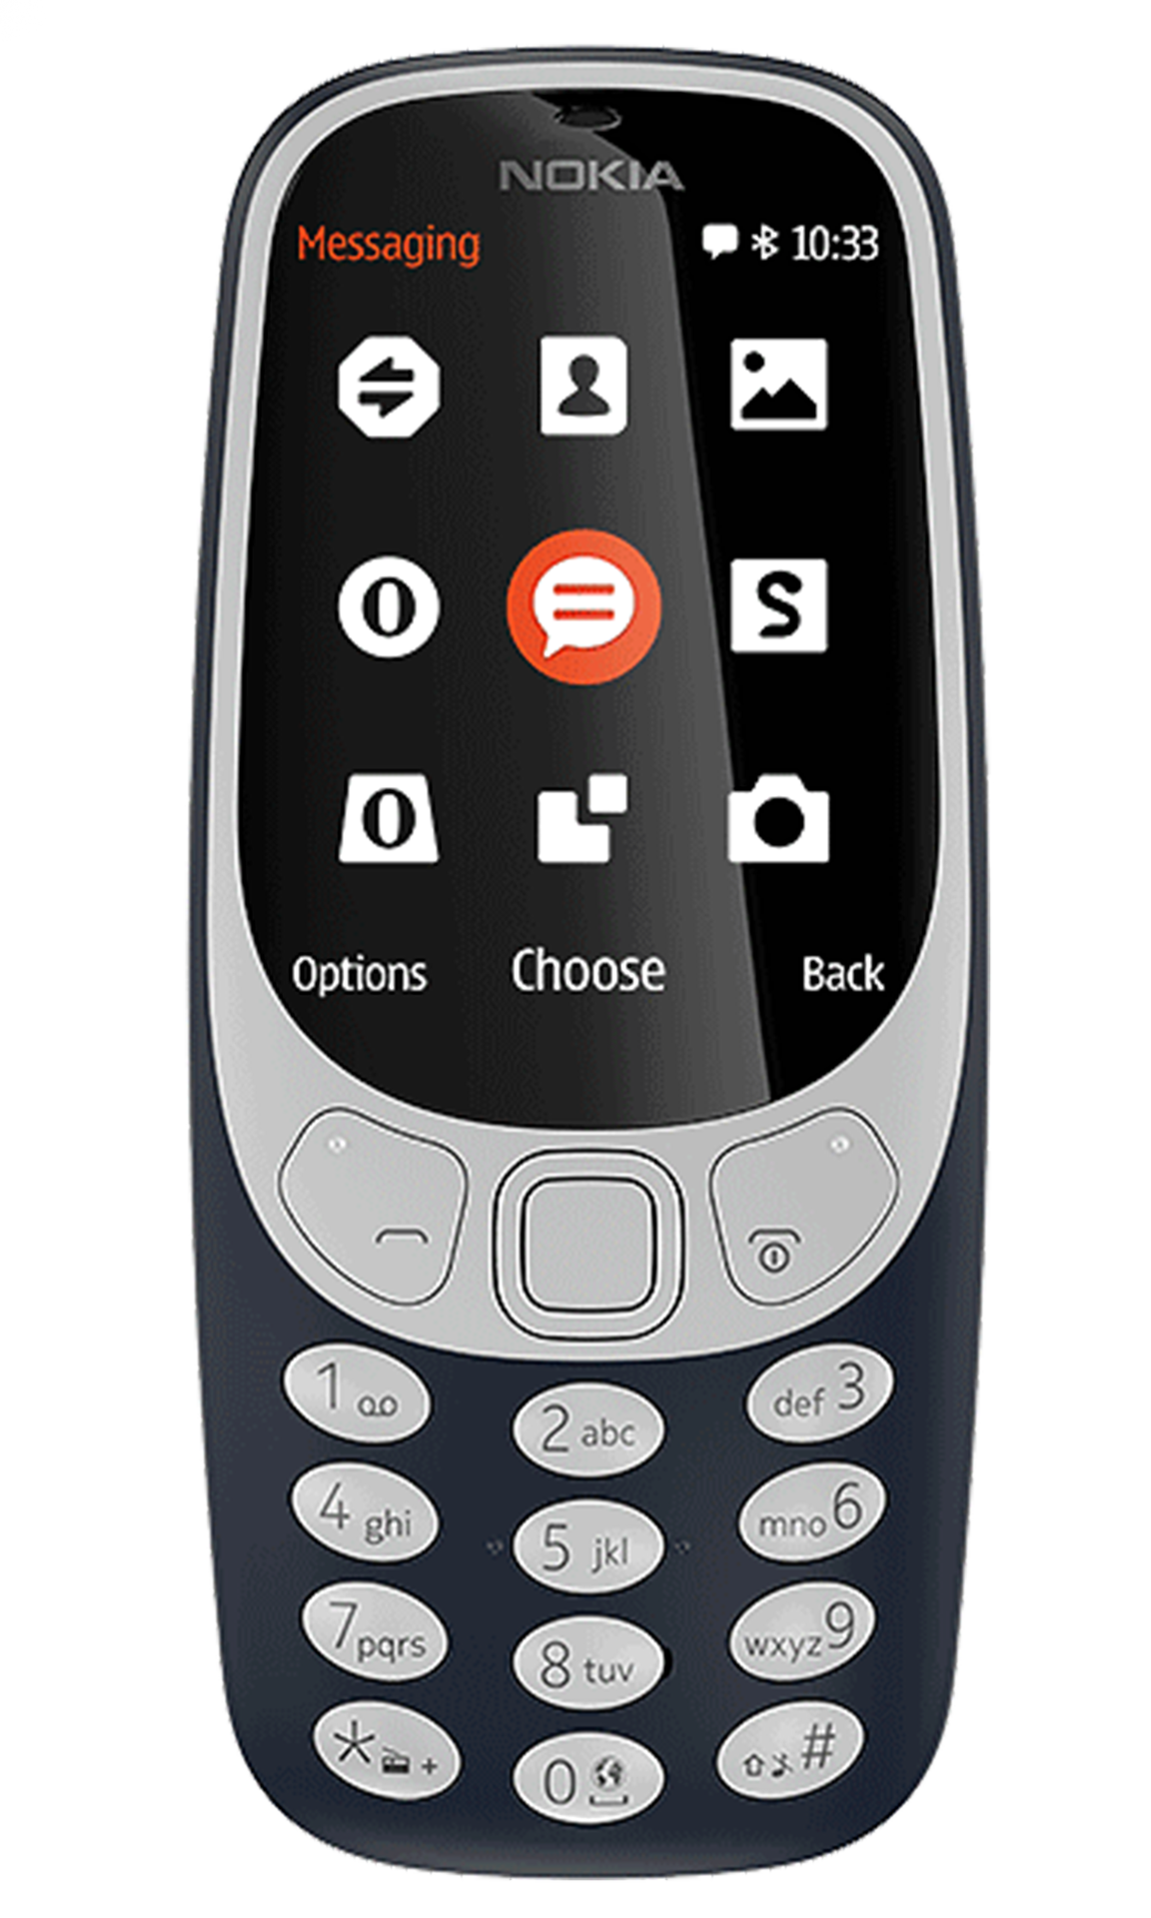 Nokia 3310 (2017) - The complete information and online sale